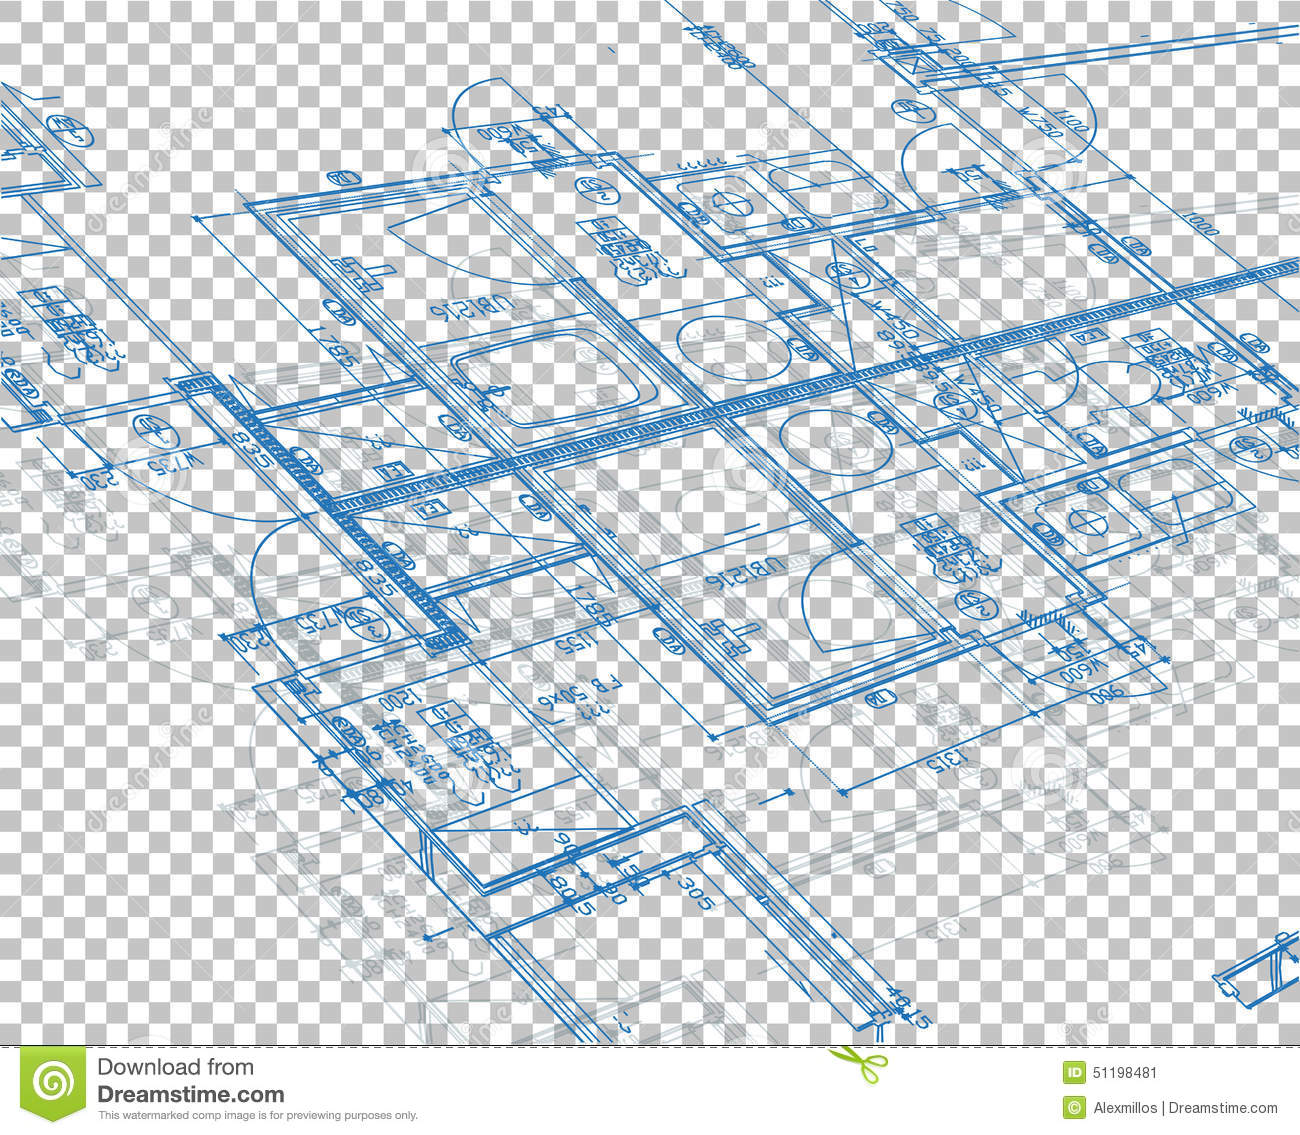 Blueprint blank layer background stock illustration illustration download blueprint blank layer background stock illustration illustration of built floor 51198481 malvernweather Image collections